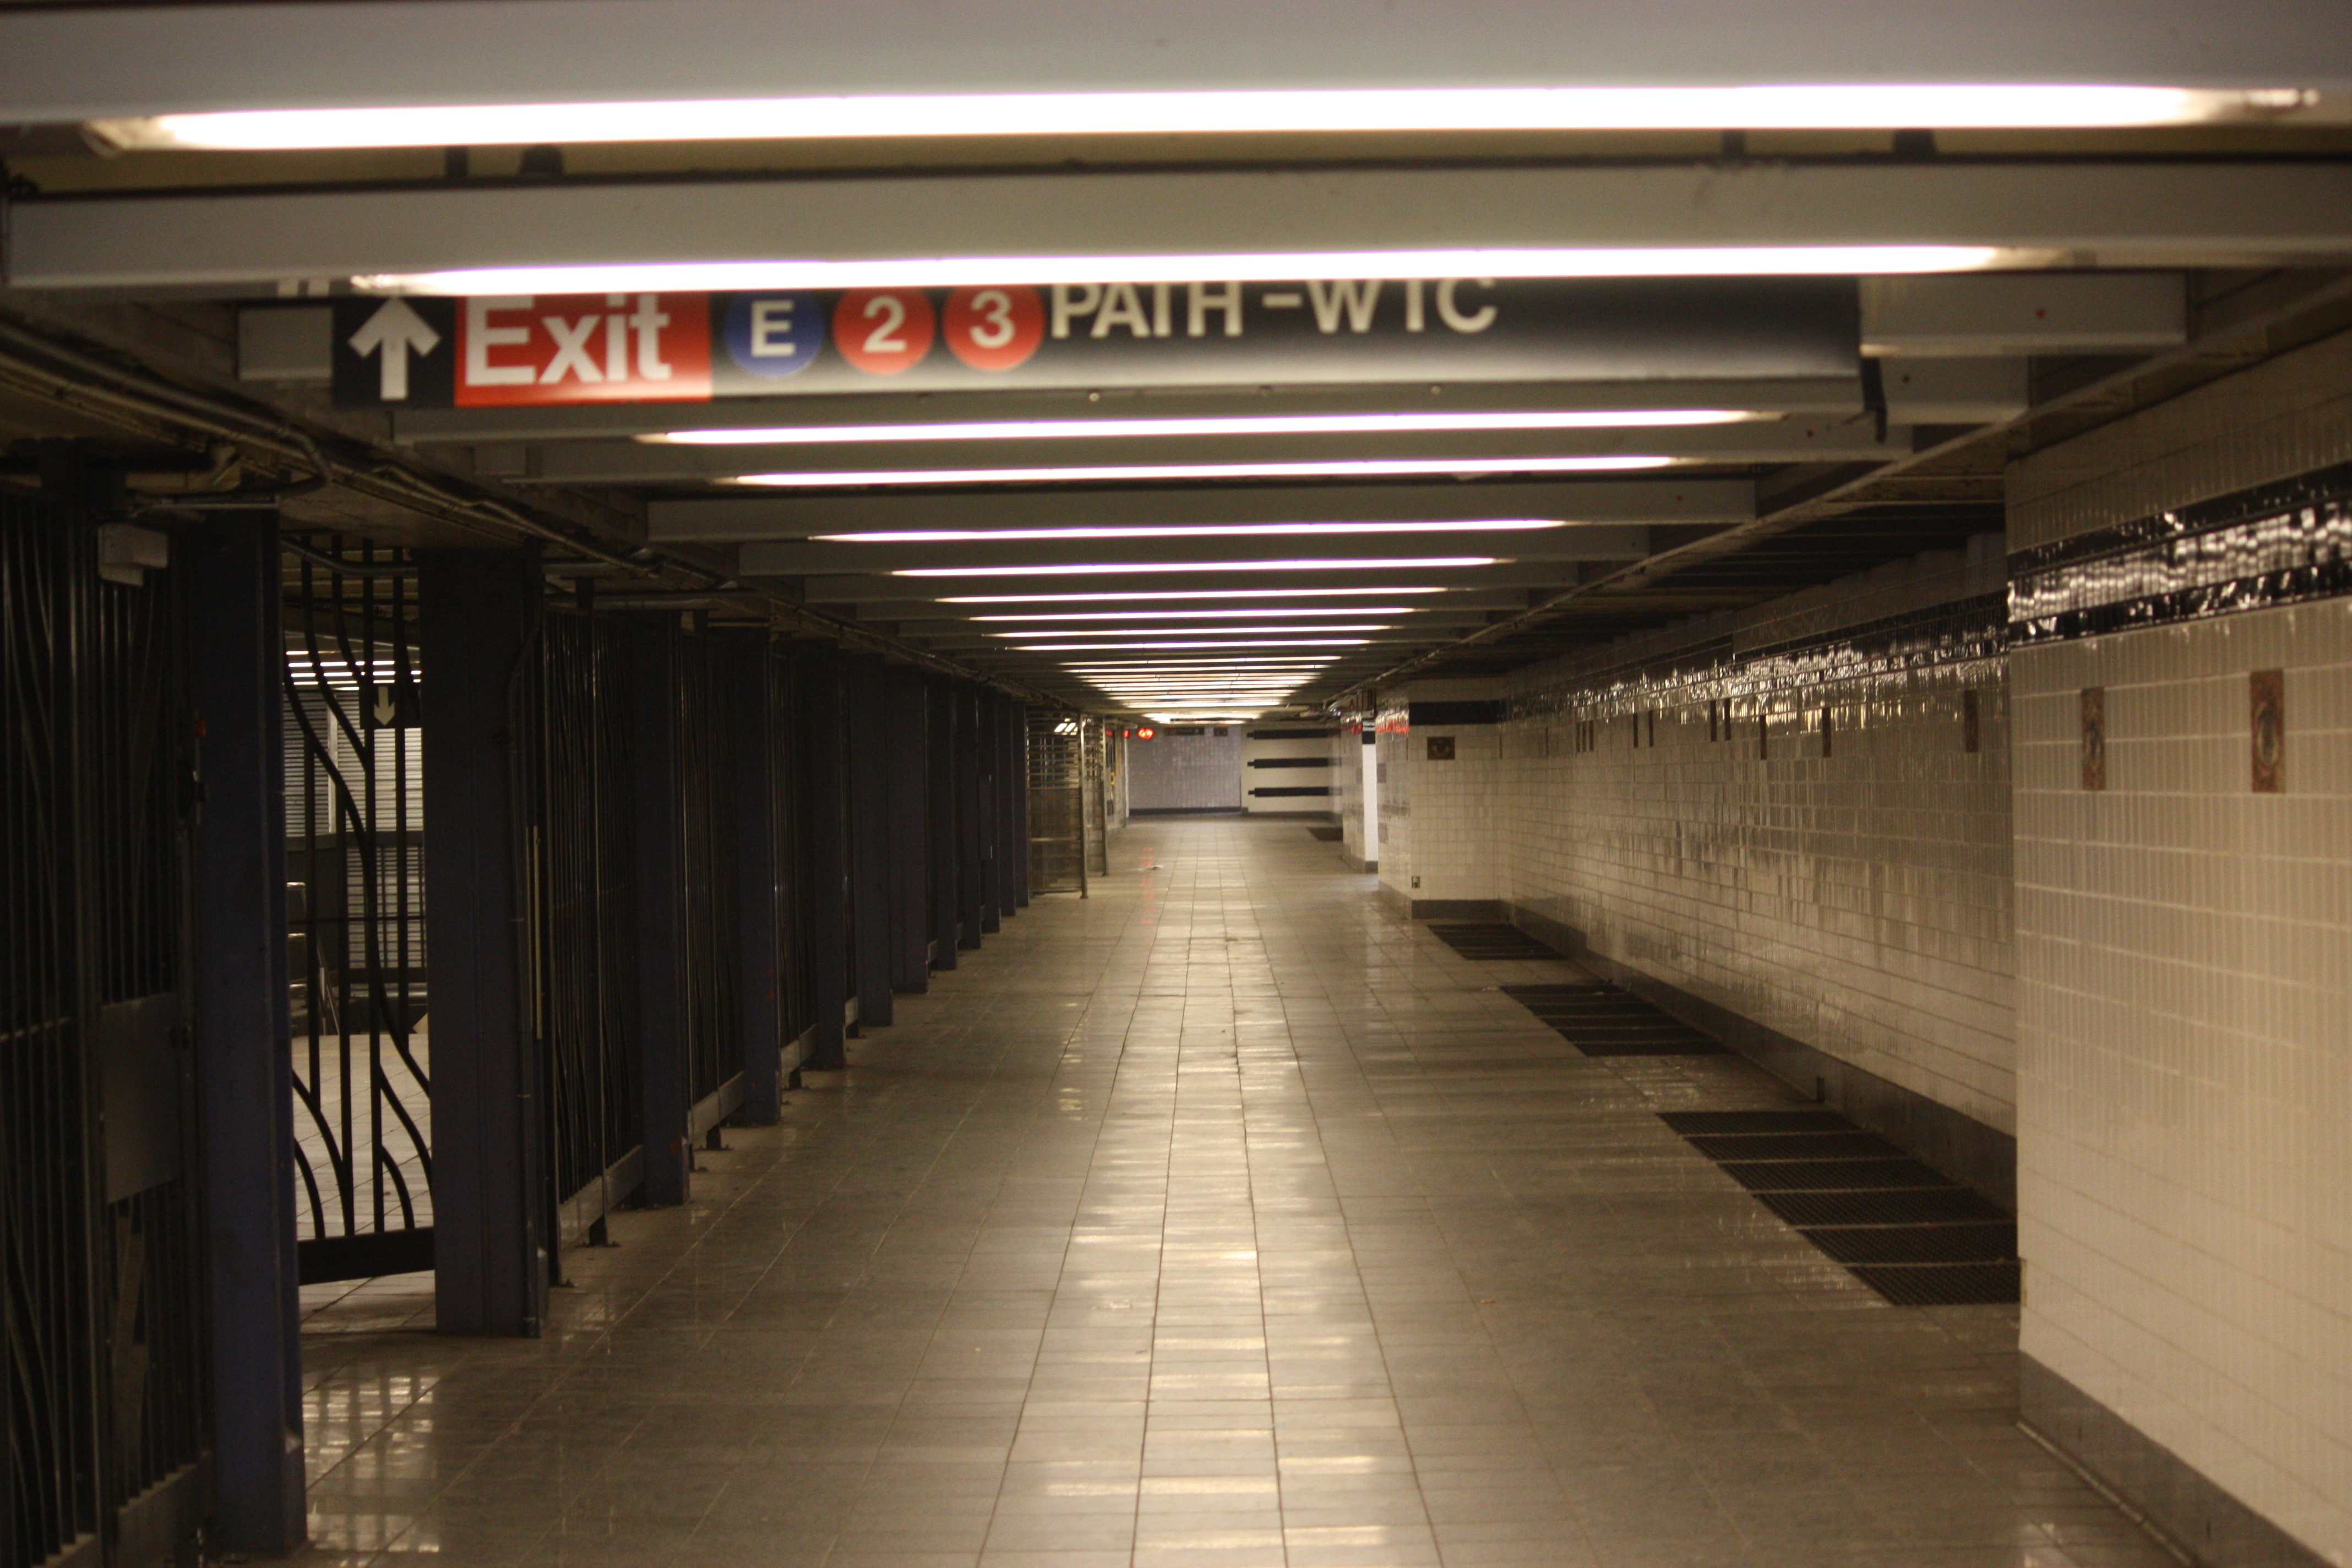 Nyc Subway Map 14 Th Street 2 Train To Park Place.Chambers Street World Trade Center Park Place Cortlandt Street